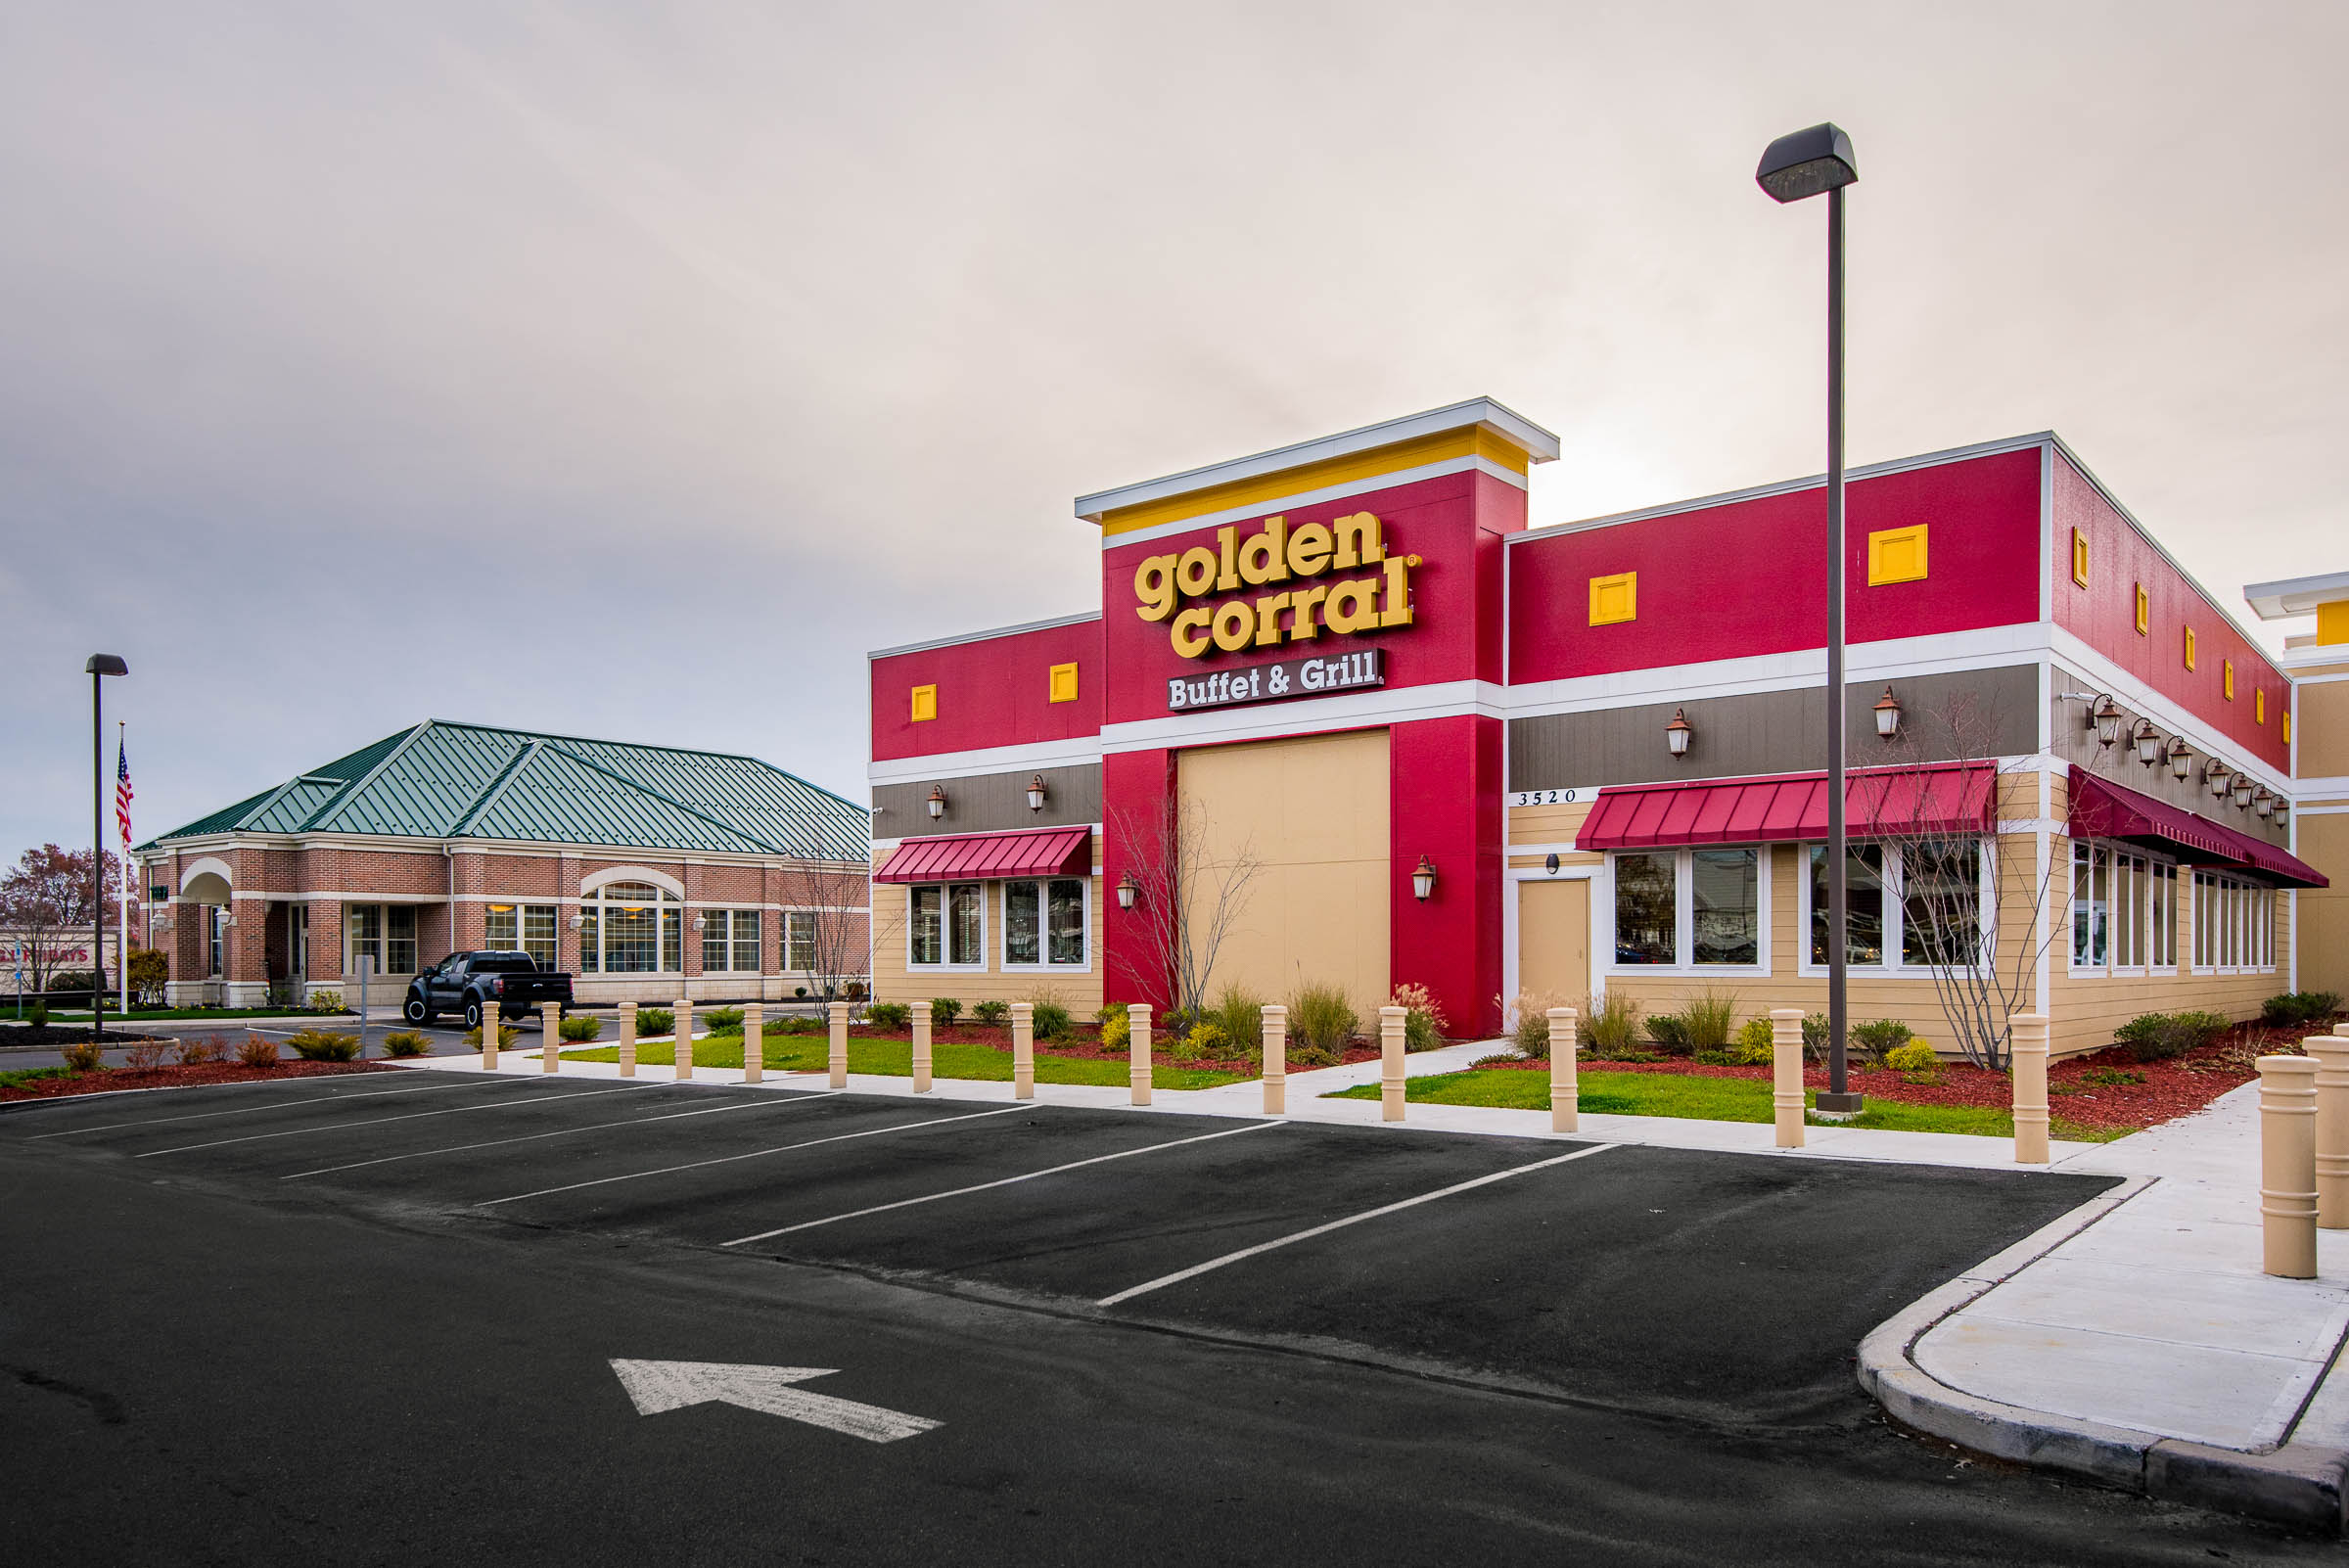 Find 5 listings related to Golden Corral in Jersey City on metin2wdw.ga See reviews, photos, directions, phone numbers and more for Golden Corral locations in Jersey City, NJ. Start your search by typing in the business name below.